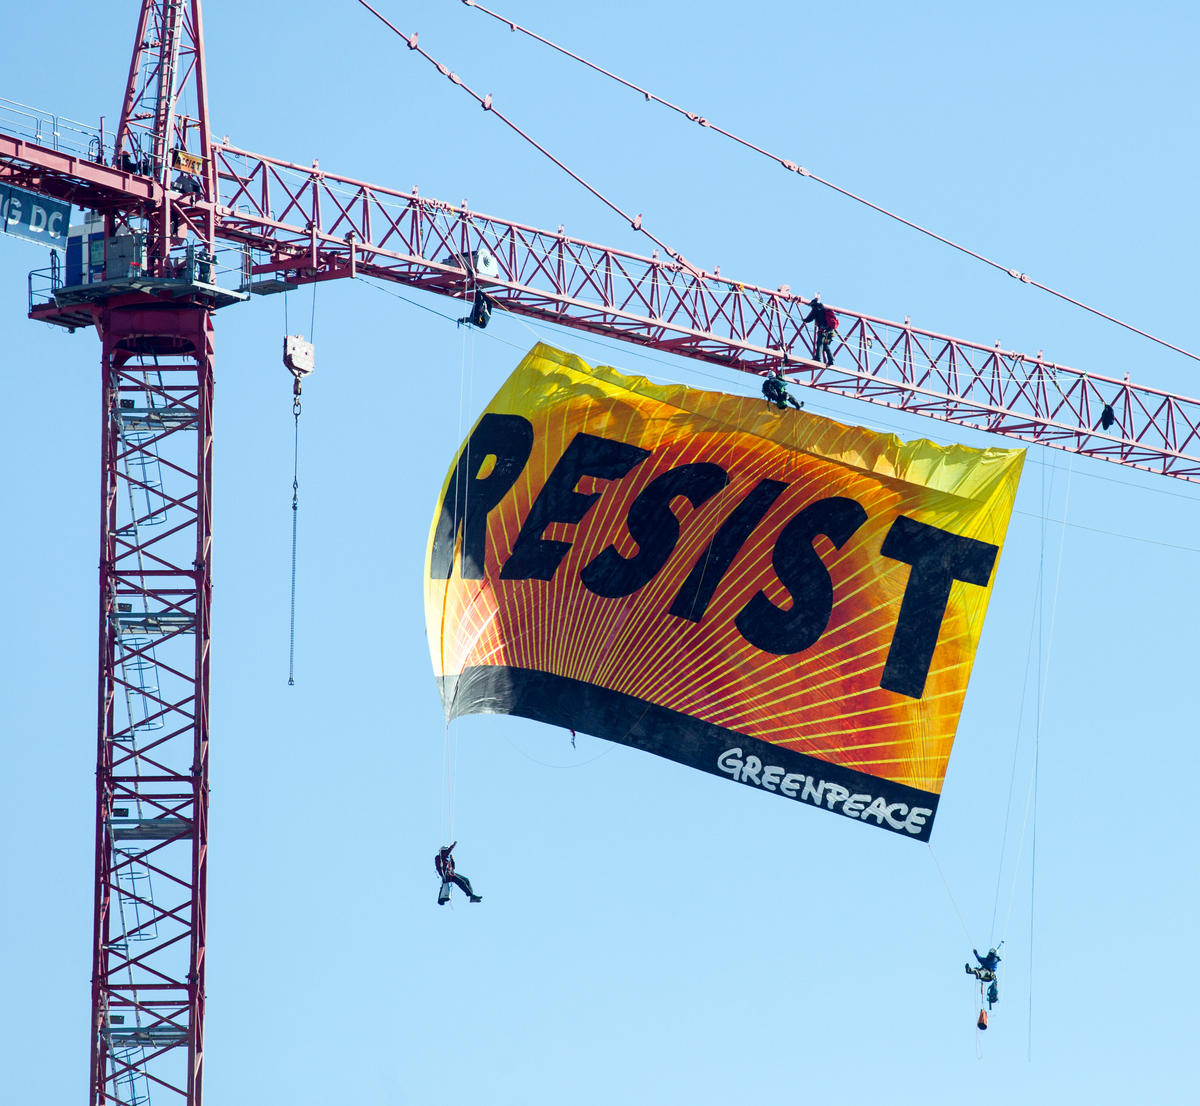 Resist Banner Hangs Message For Trump White House. © Kate Davison / Greenpeace